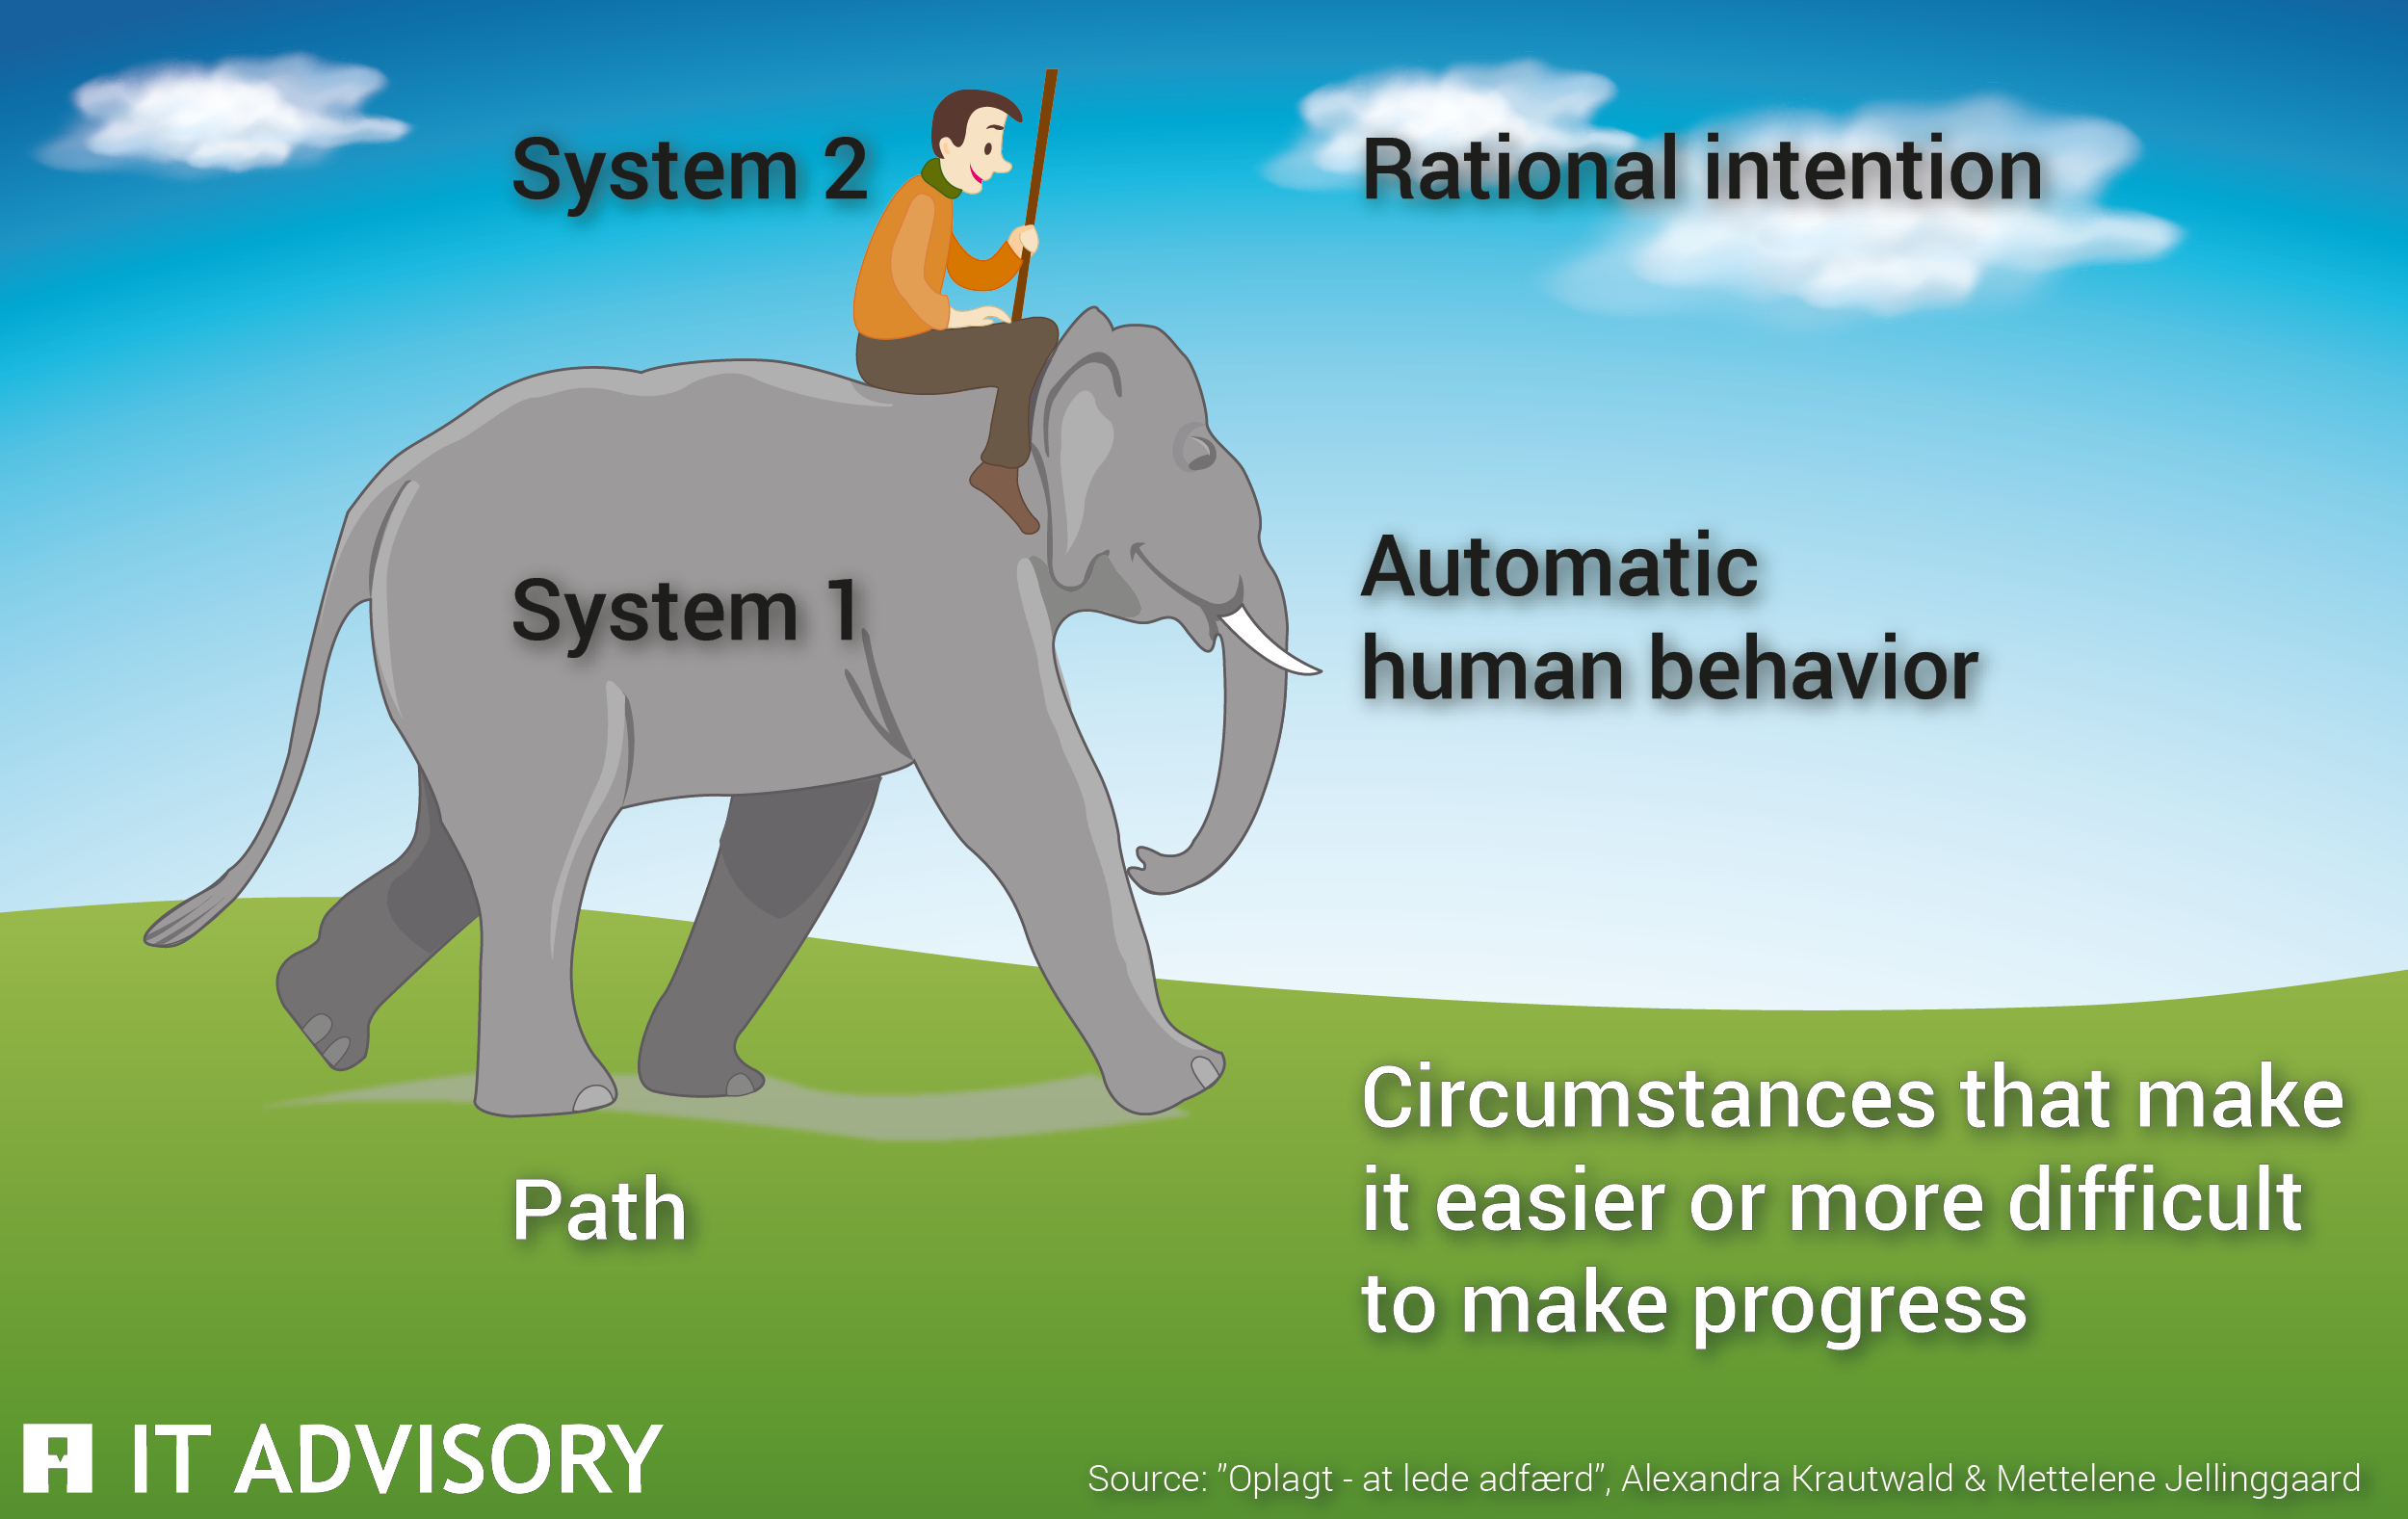 The elephant represents human instincts, habits, and unconscious reactions. The rider represents our logical and rational aspects. With the rider on top, the elephant walks on a path that represents our surroundings as well as the direction we want to take.